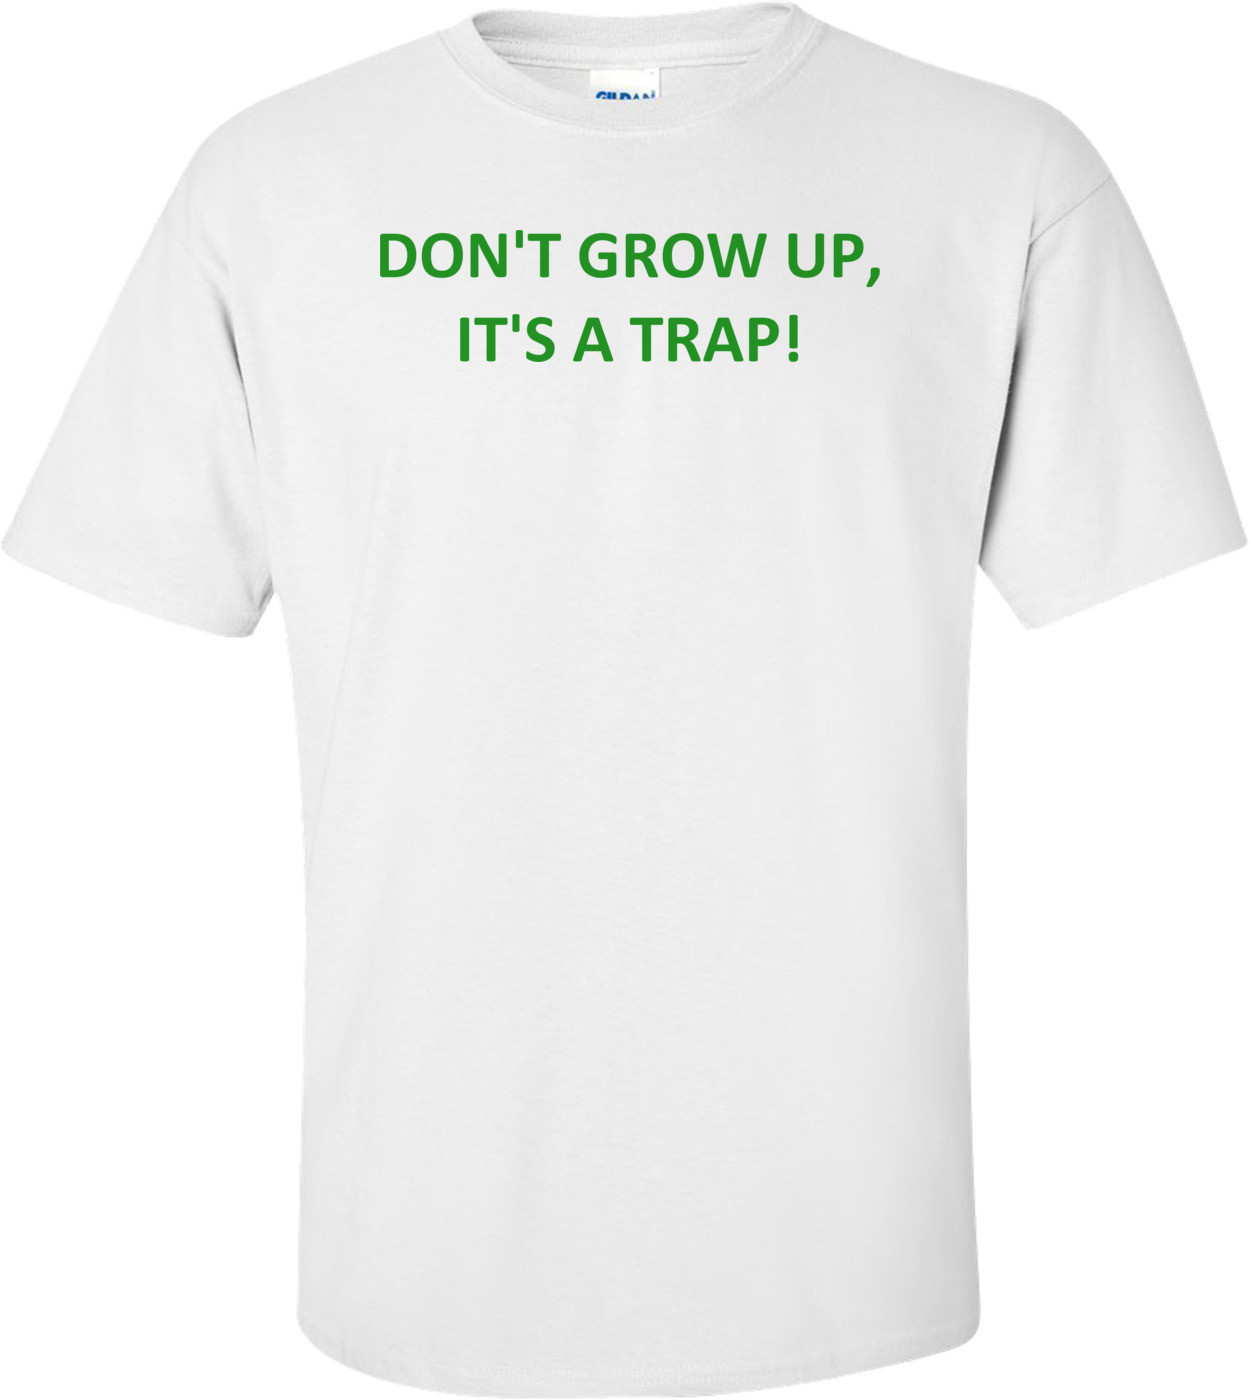 DON'T GROW UP, IT'S A TRAP! Shirt